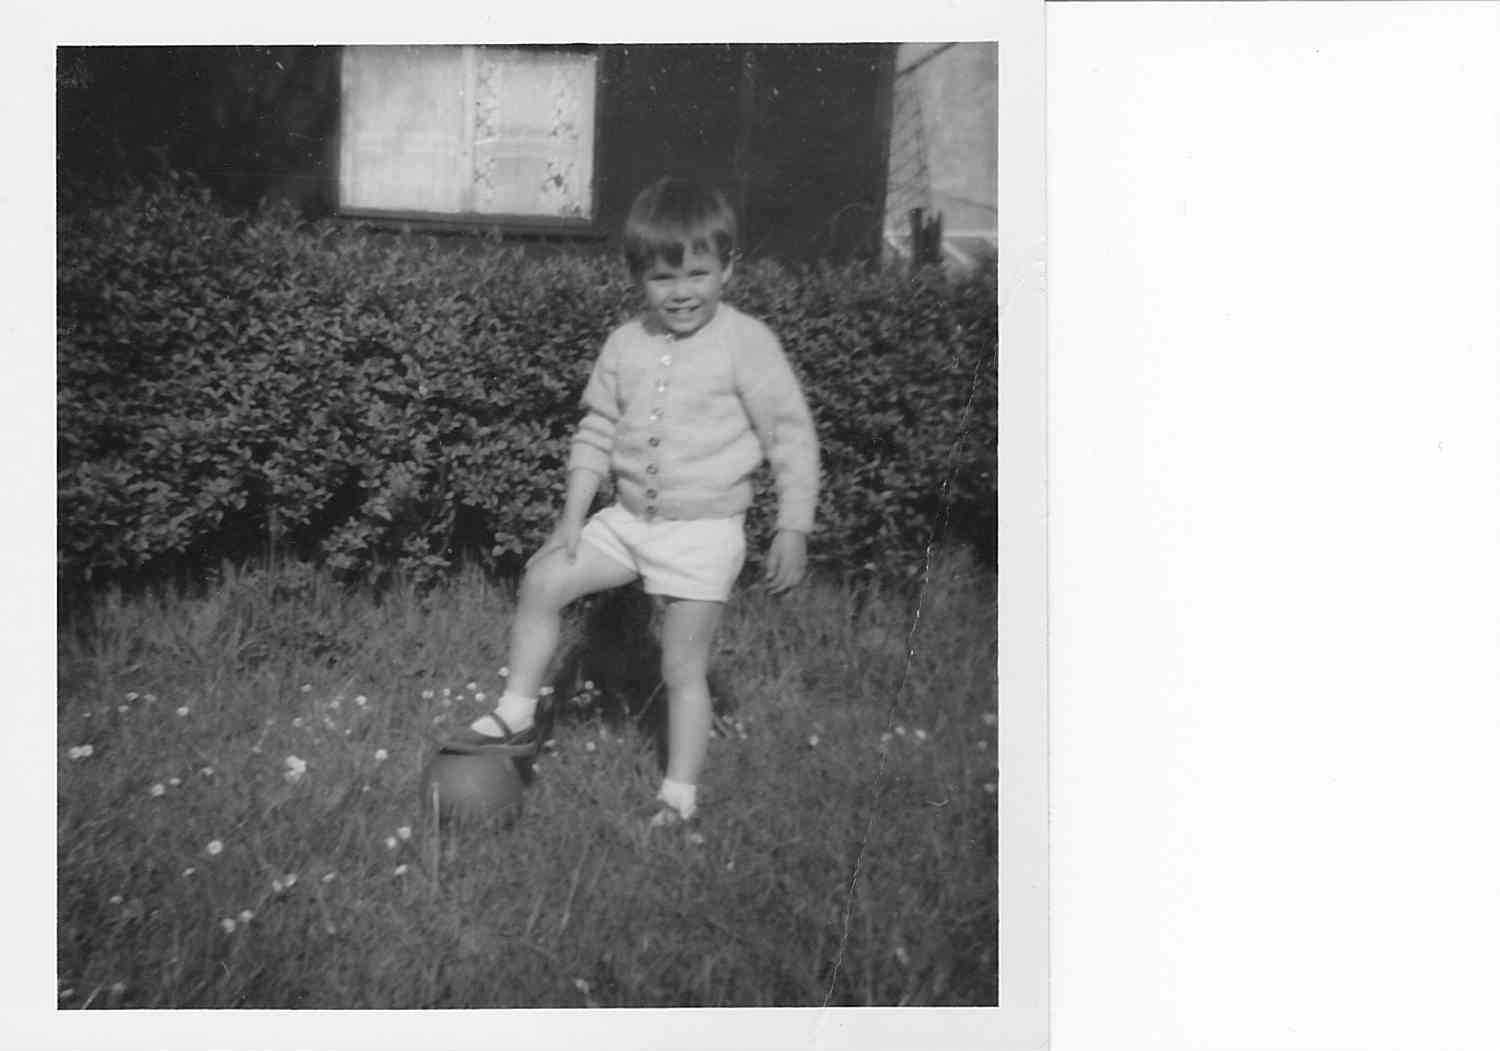 A footballer from an early age!